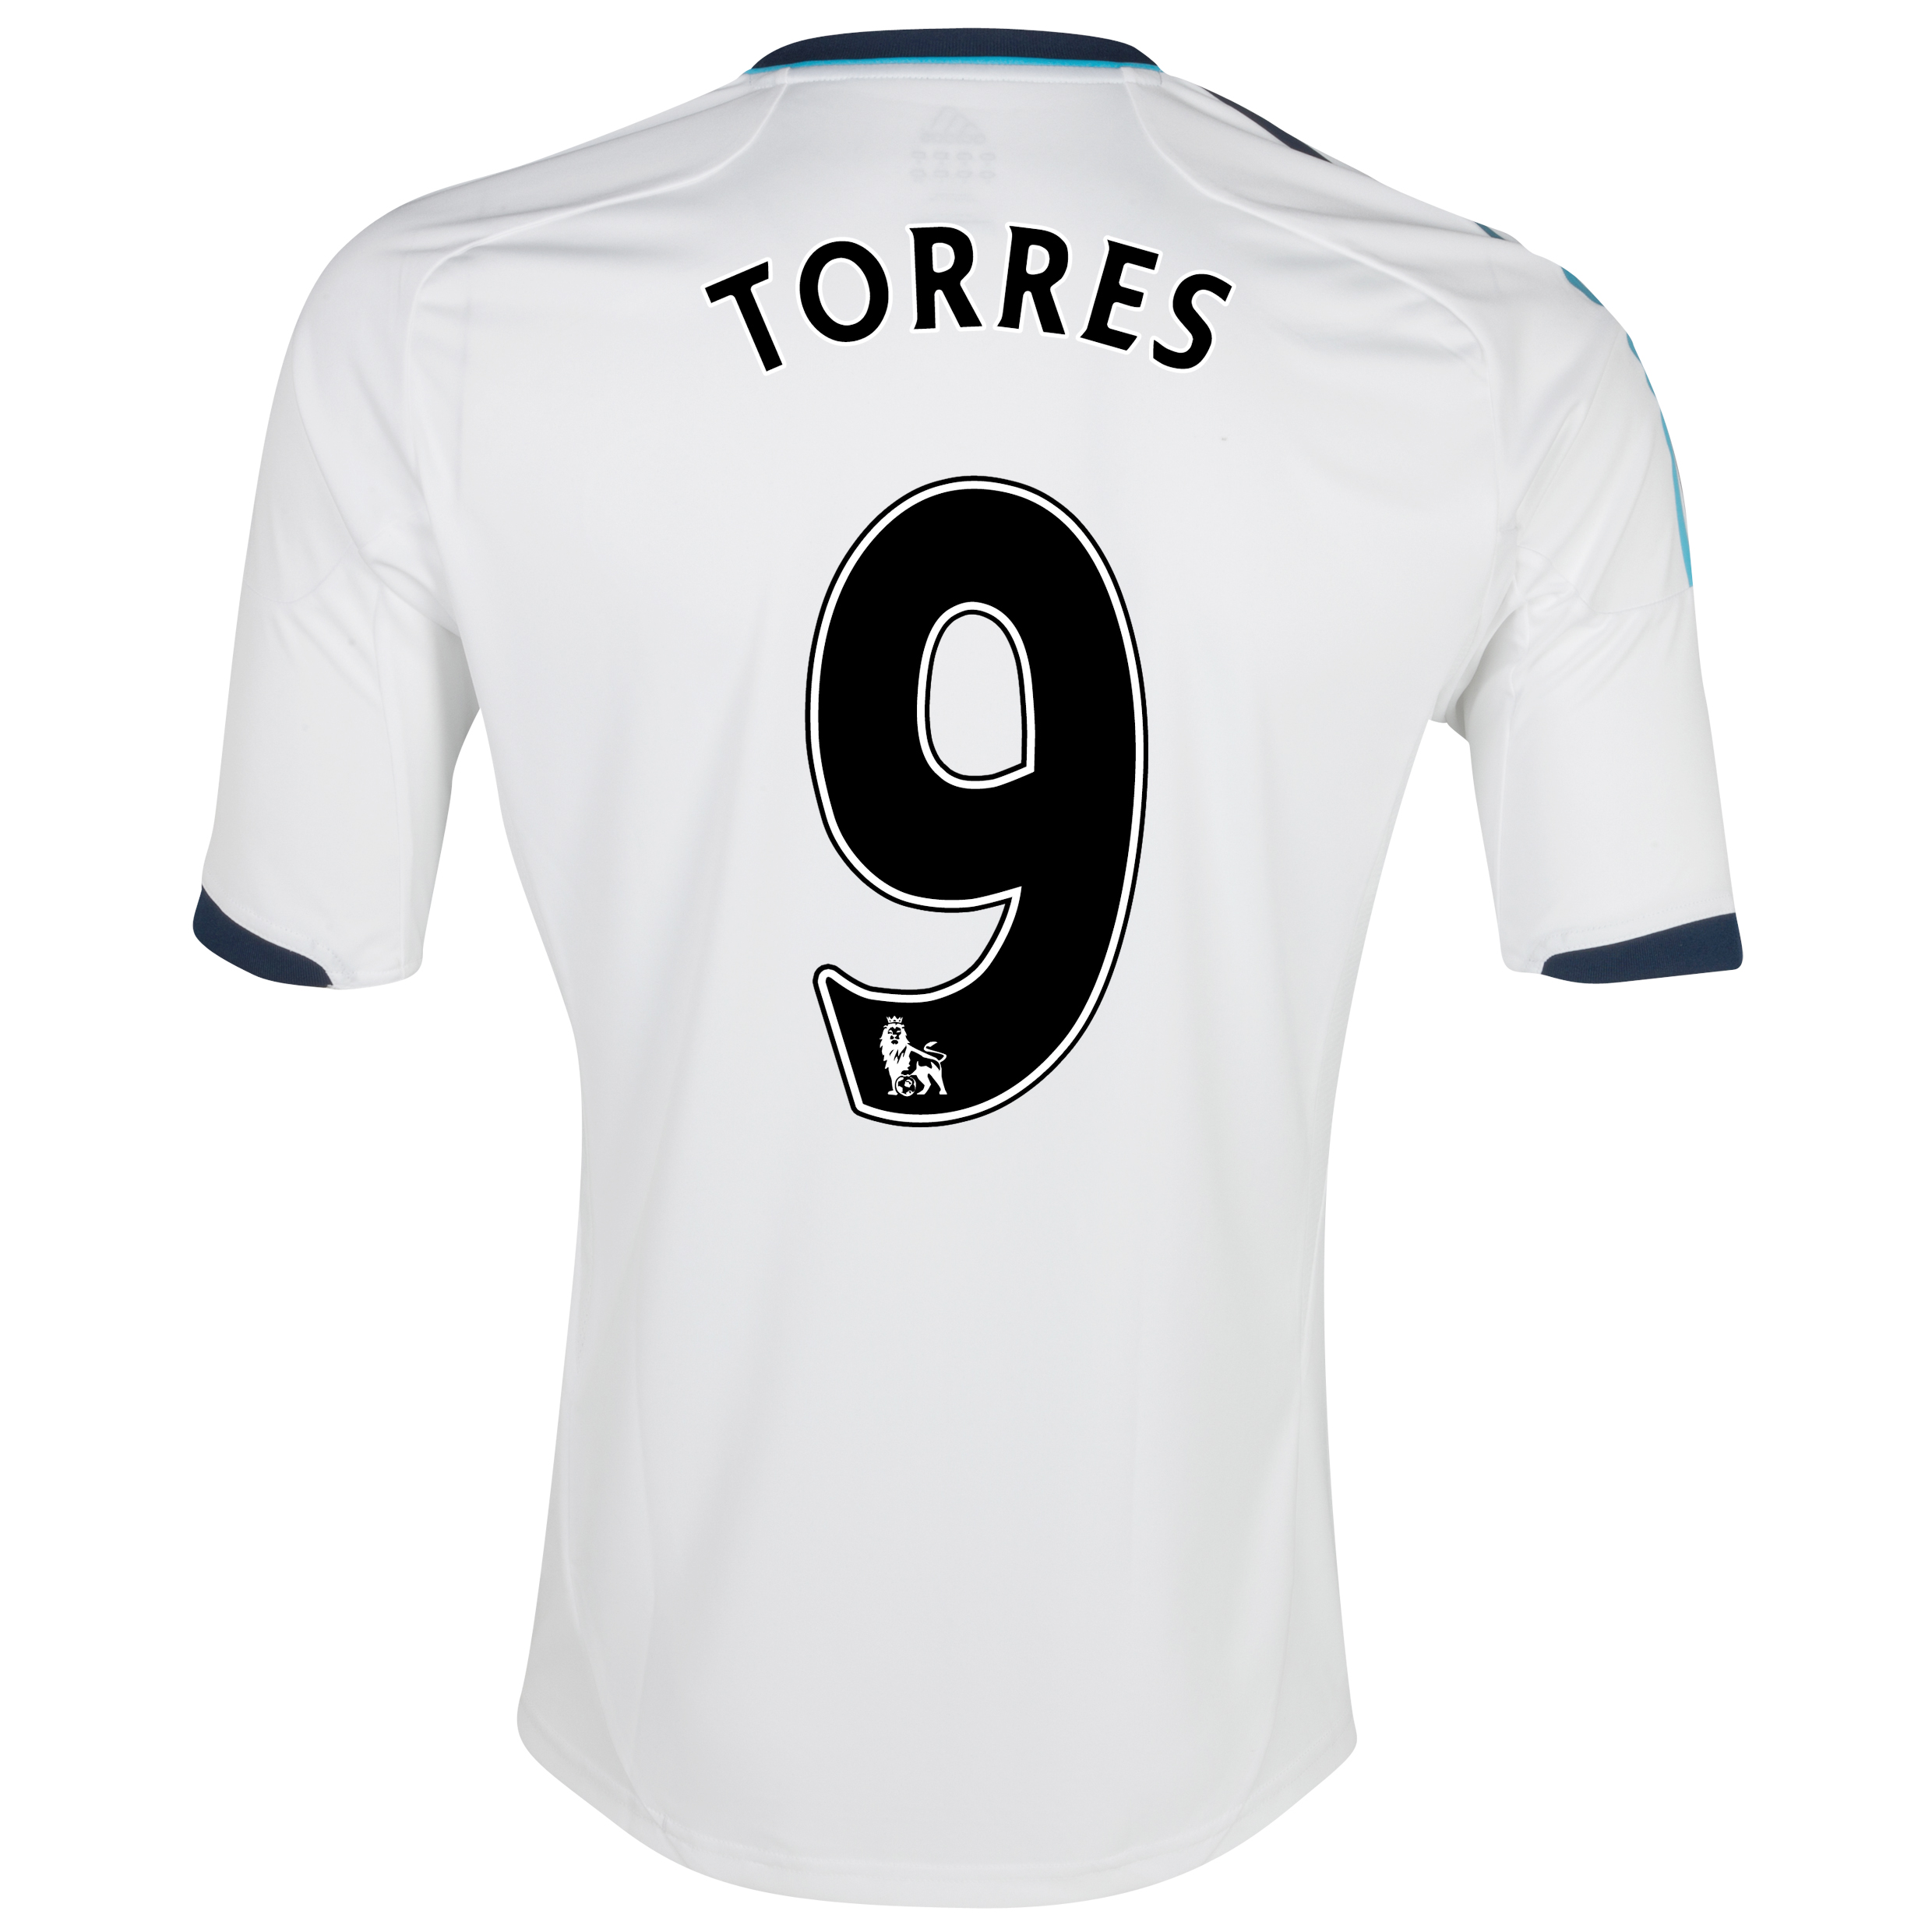 Chelsea Away Shirt 2012/13 with Torres 9 printing